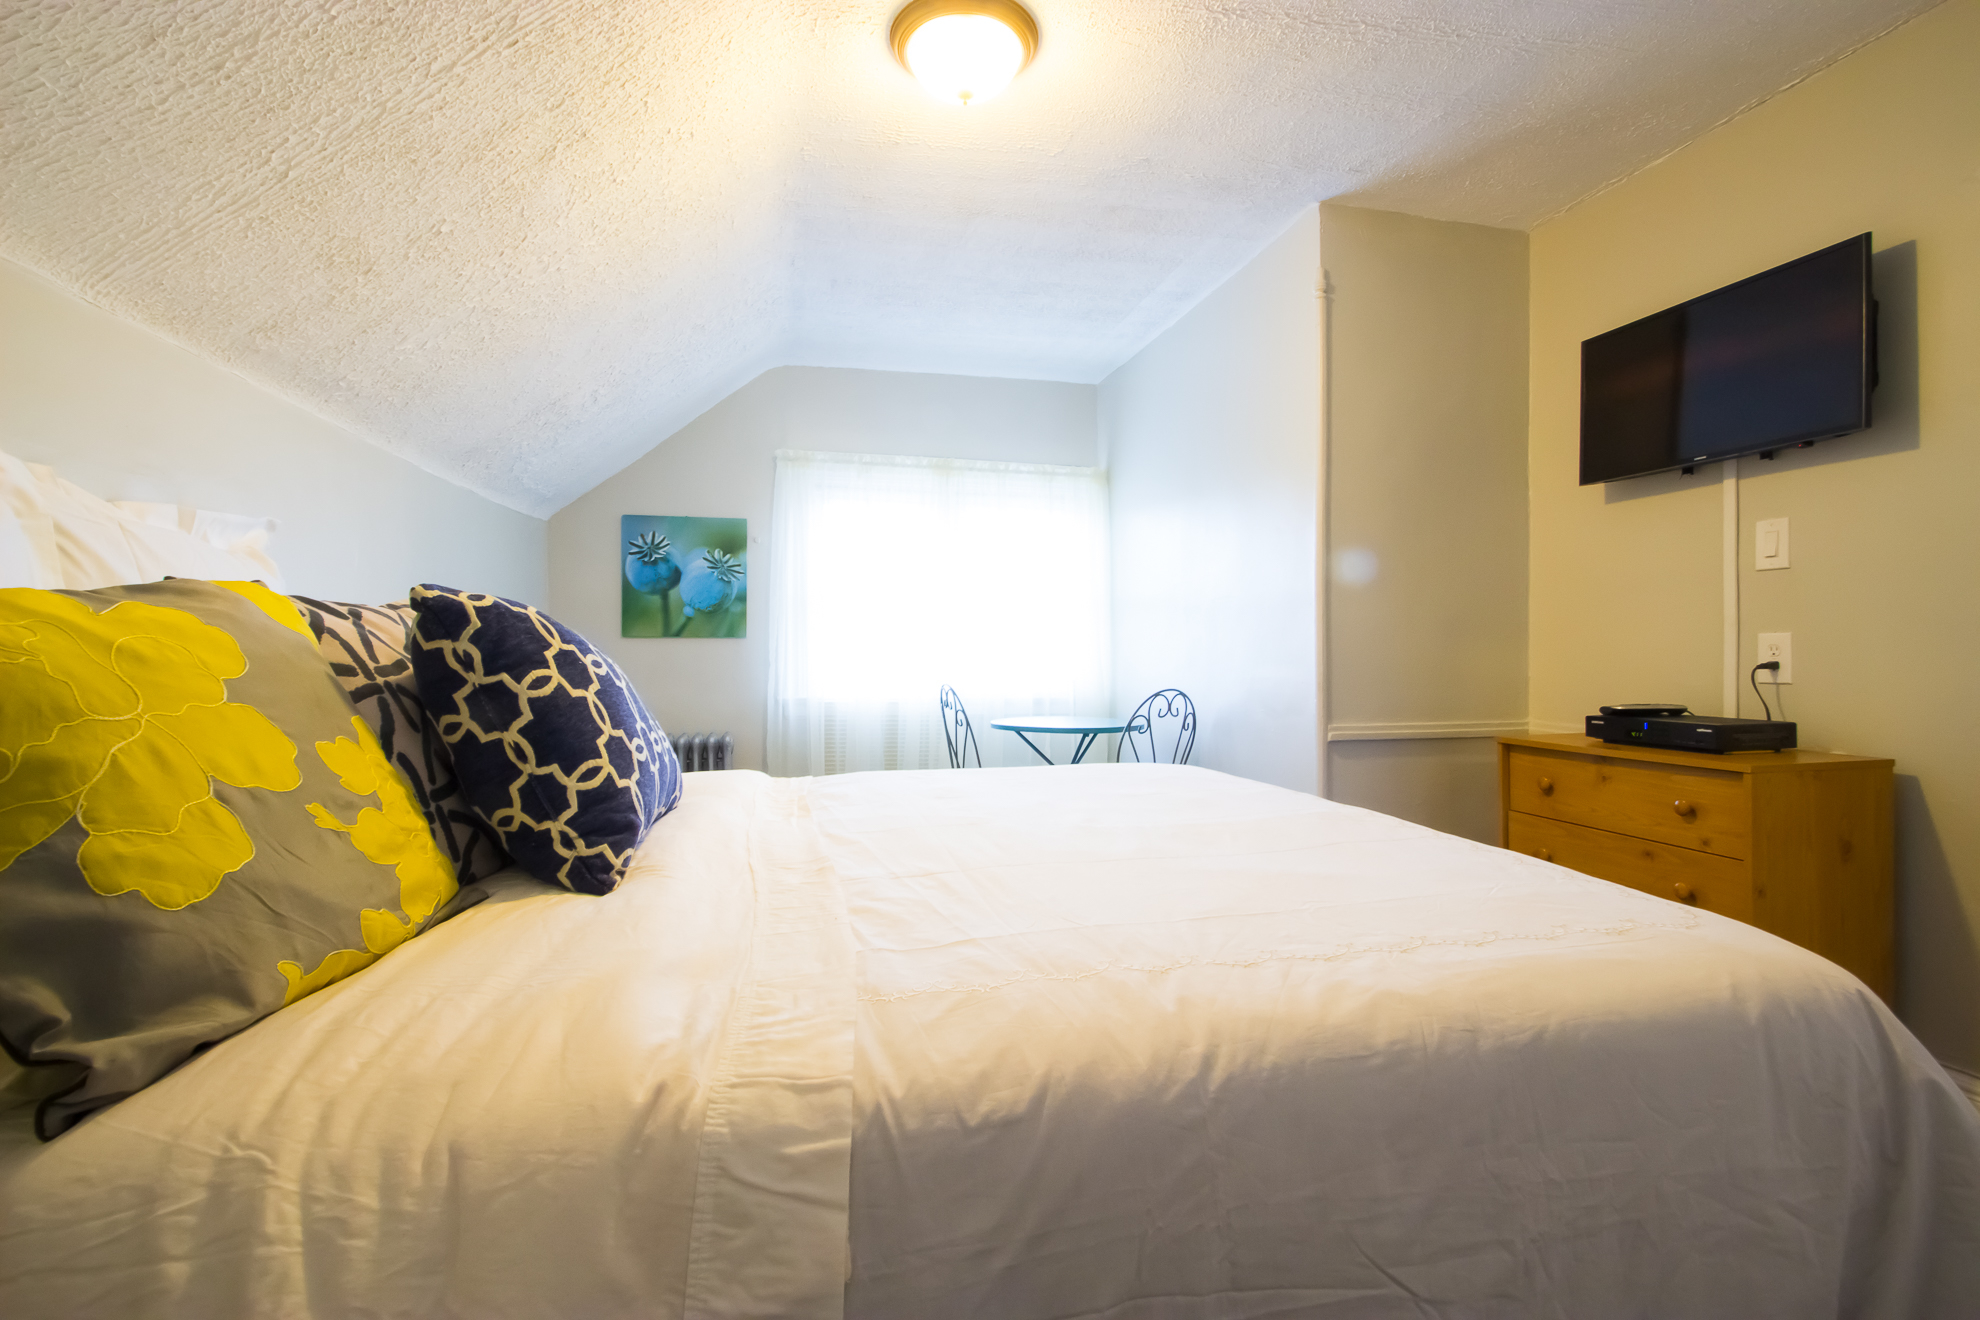 Bed Breakfast Accommodations In Brooklyn Ny Brooklyn